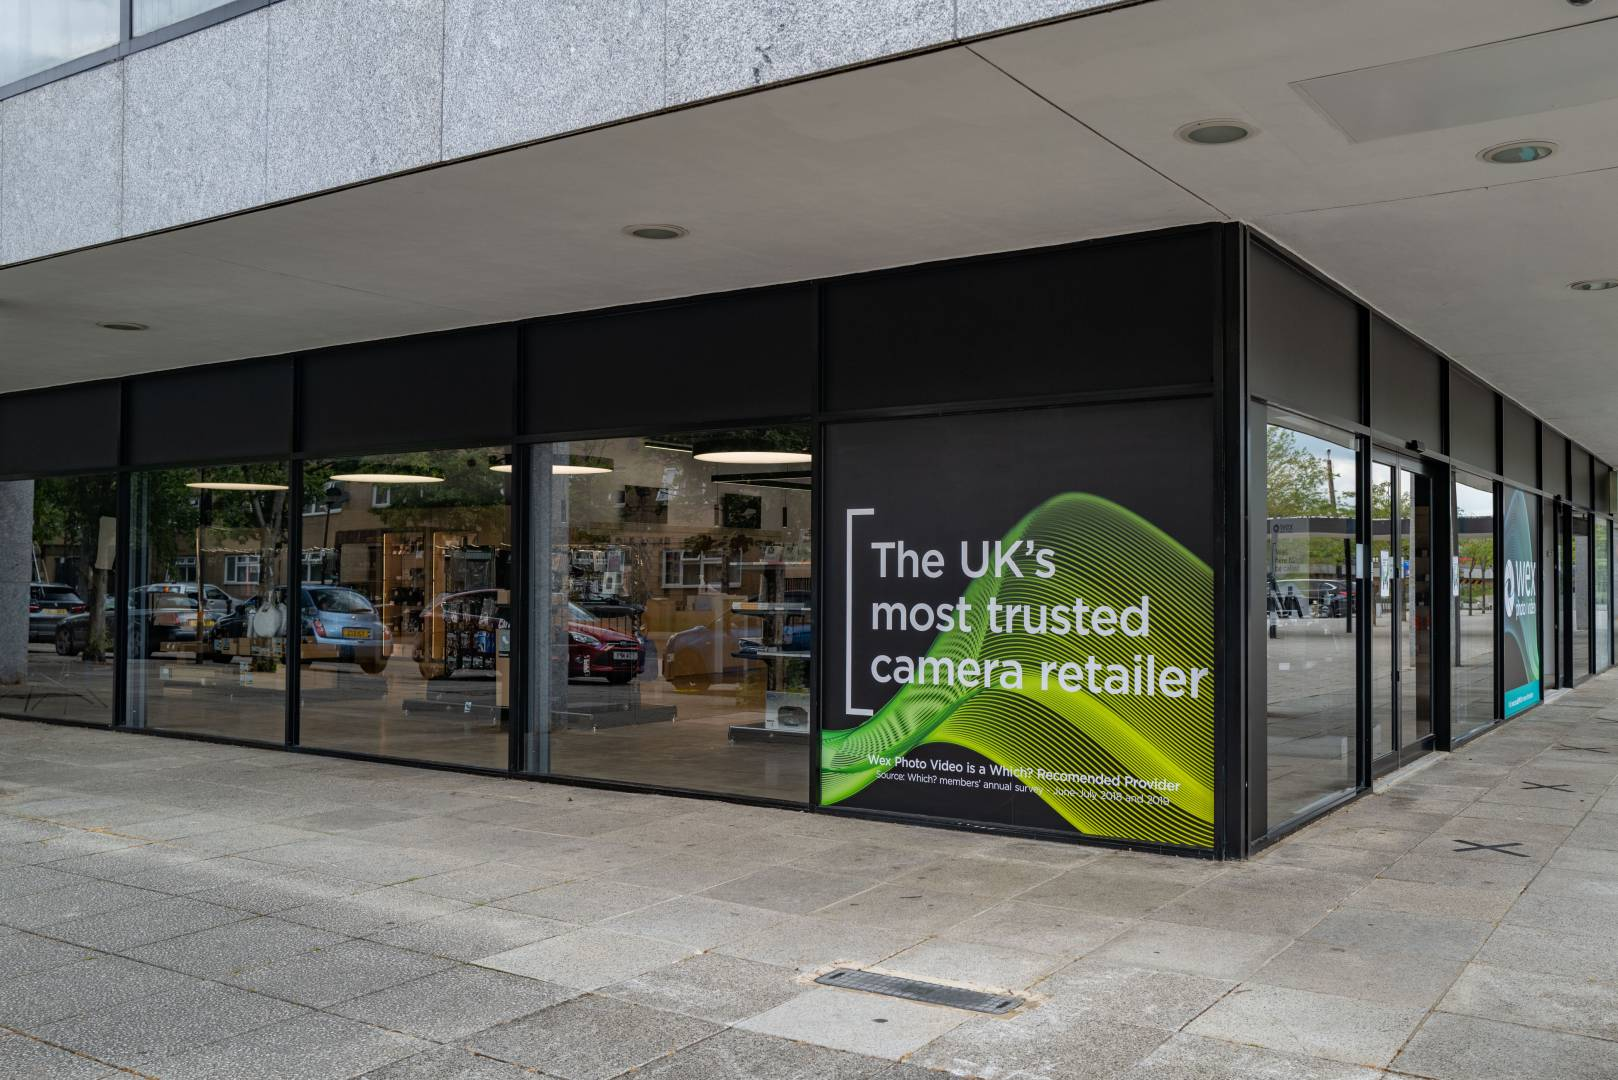 Wes Photo Video's new 3000sq ft flagship store in leafy Milton Keynes